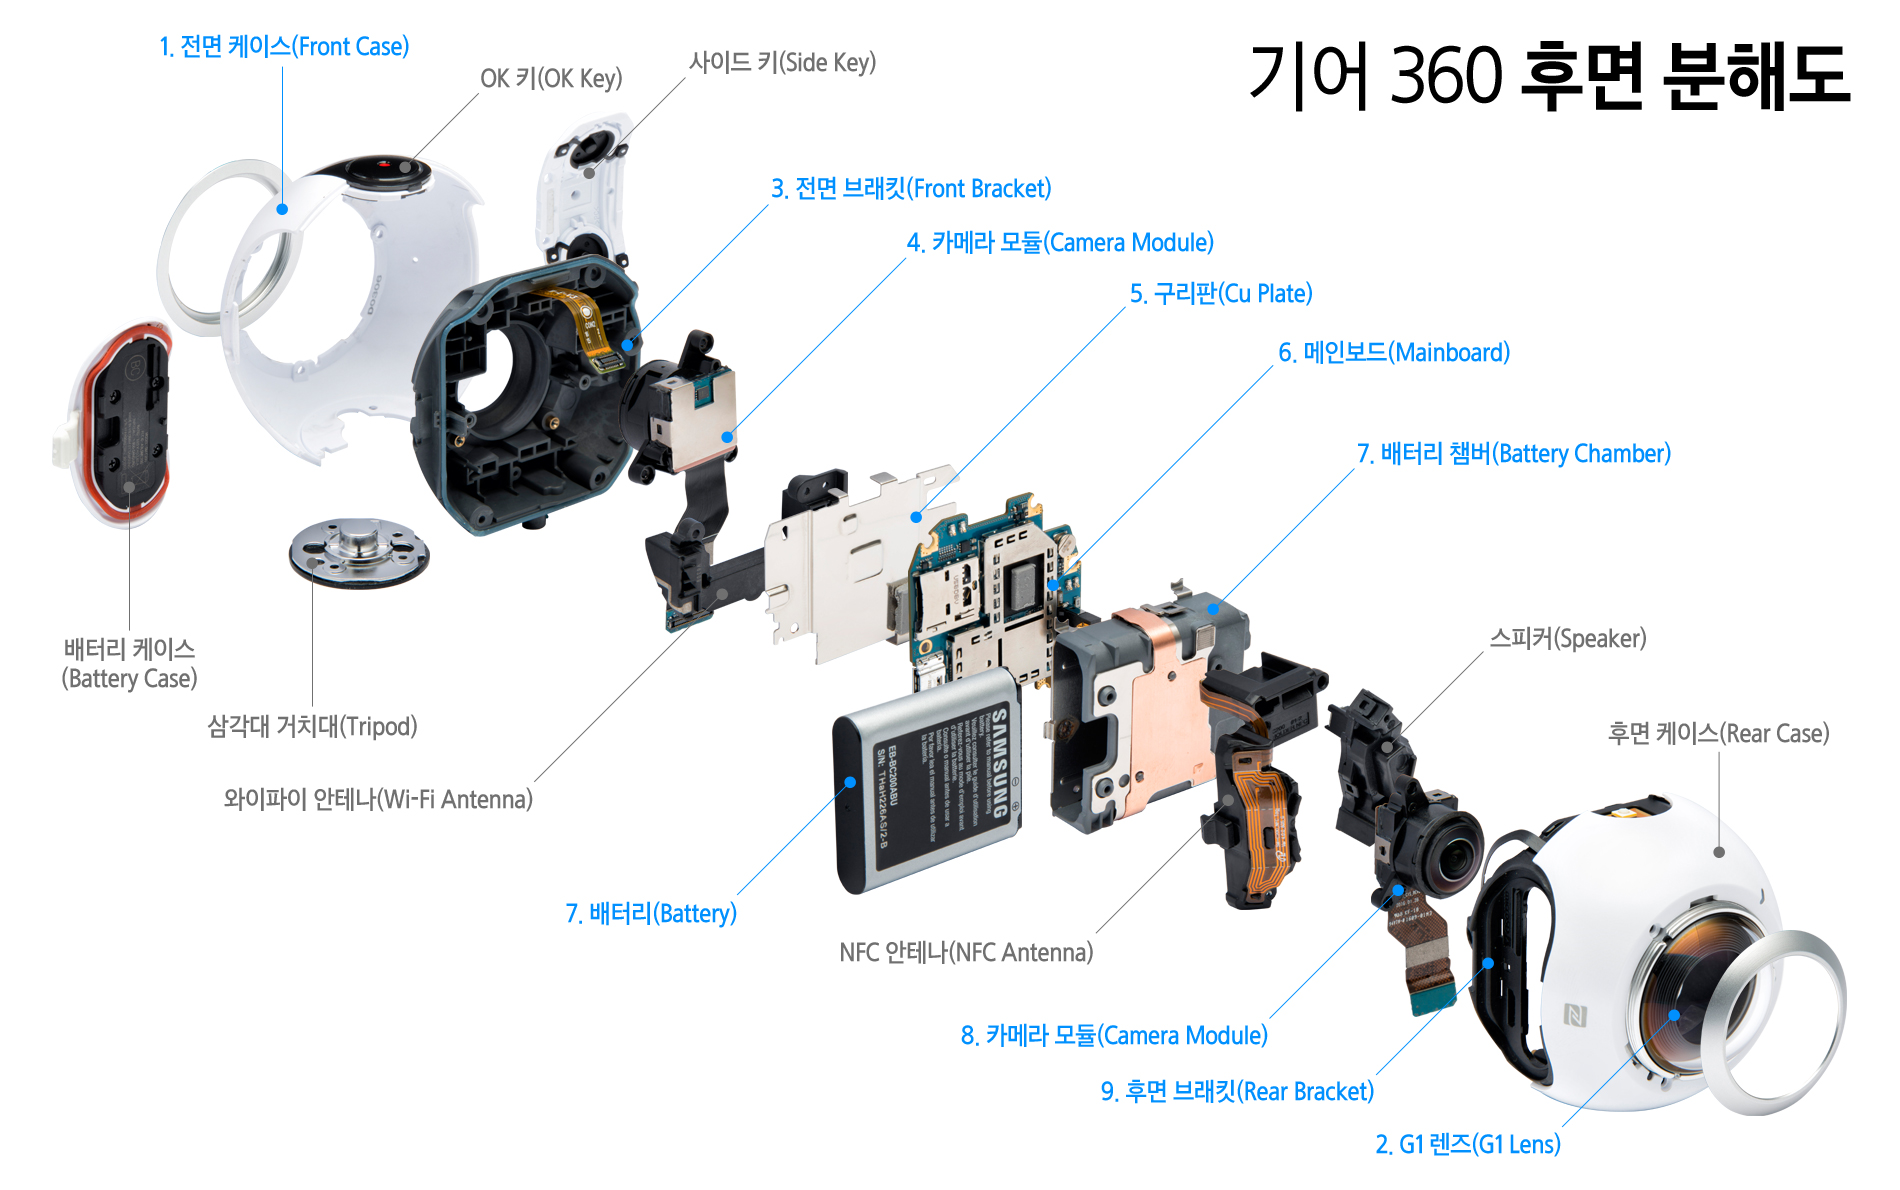 Teardown Reveals That Gear 360 Is Made Up Of Eight Main